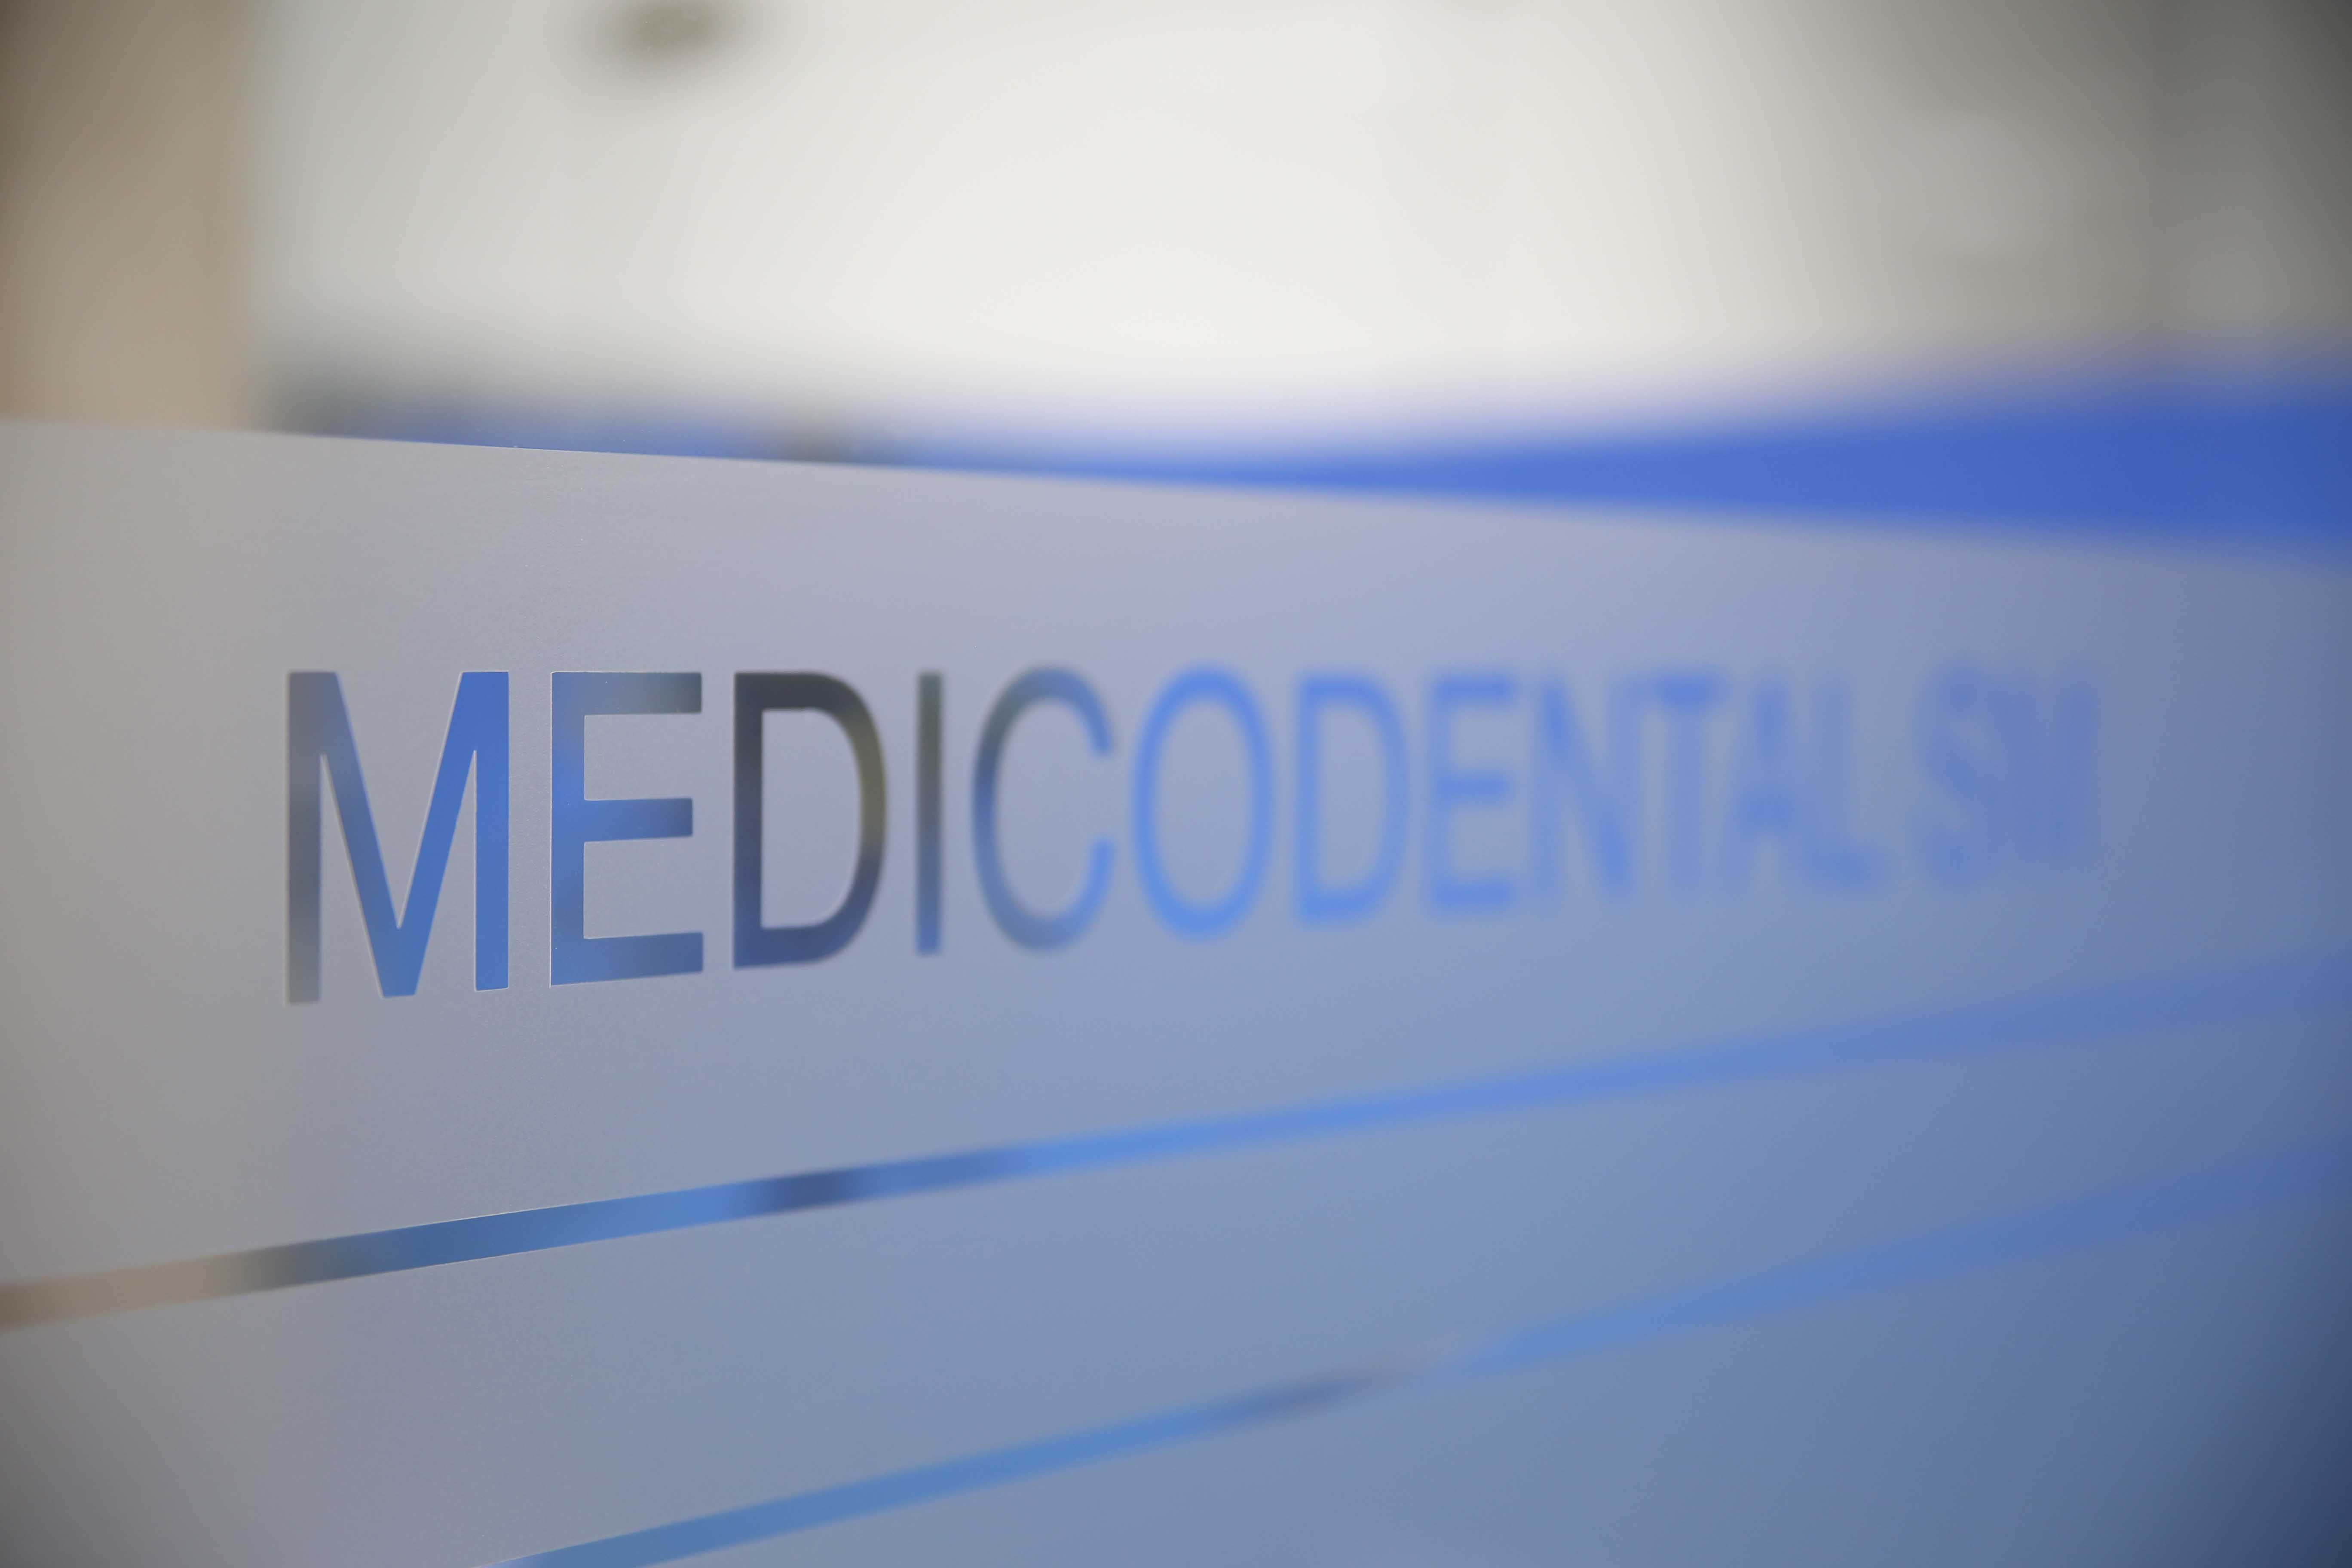 medicodental sm úbeda